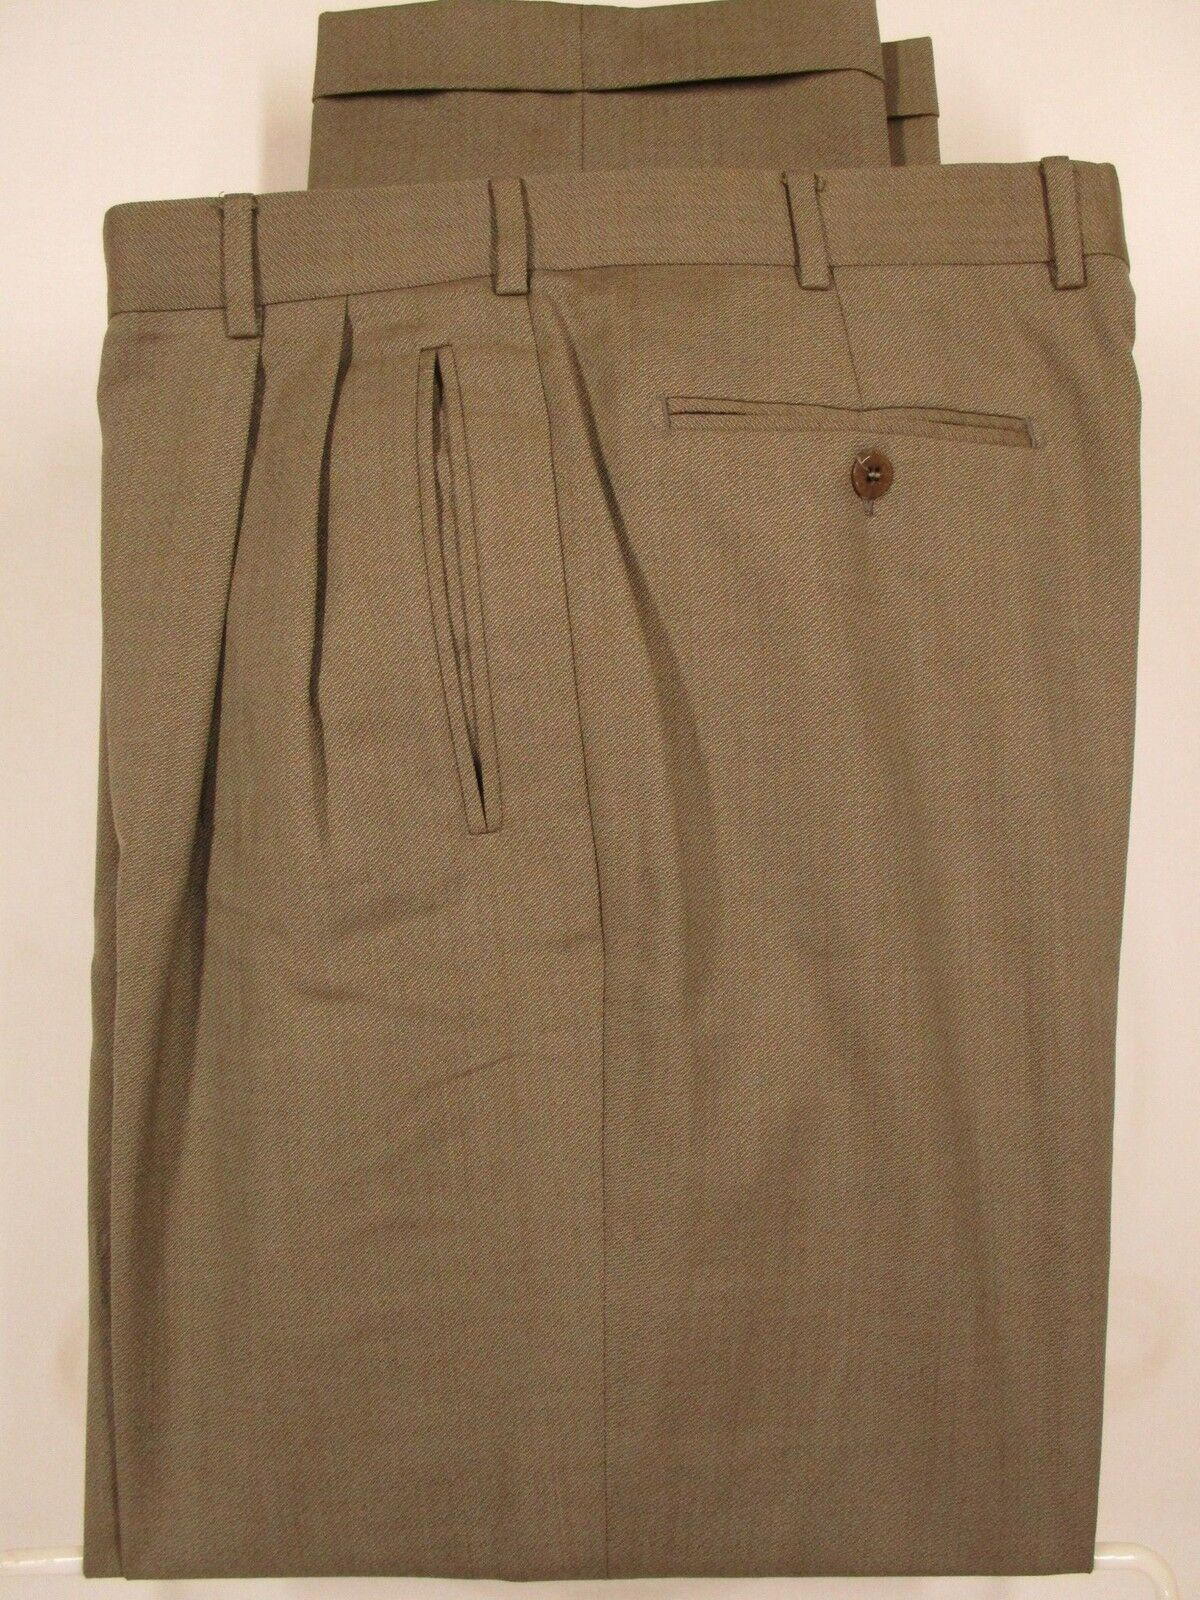 Zanella Duncan Mens Tan Pleated Wool Dress Pants size 34 34x31